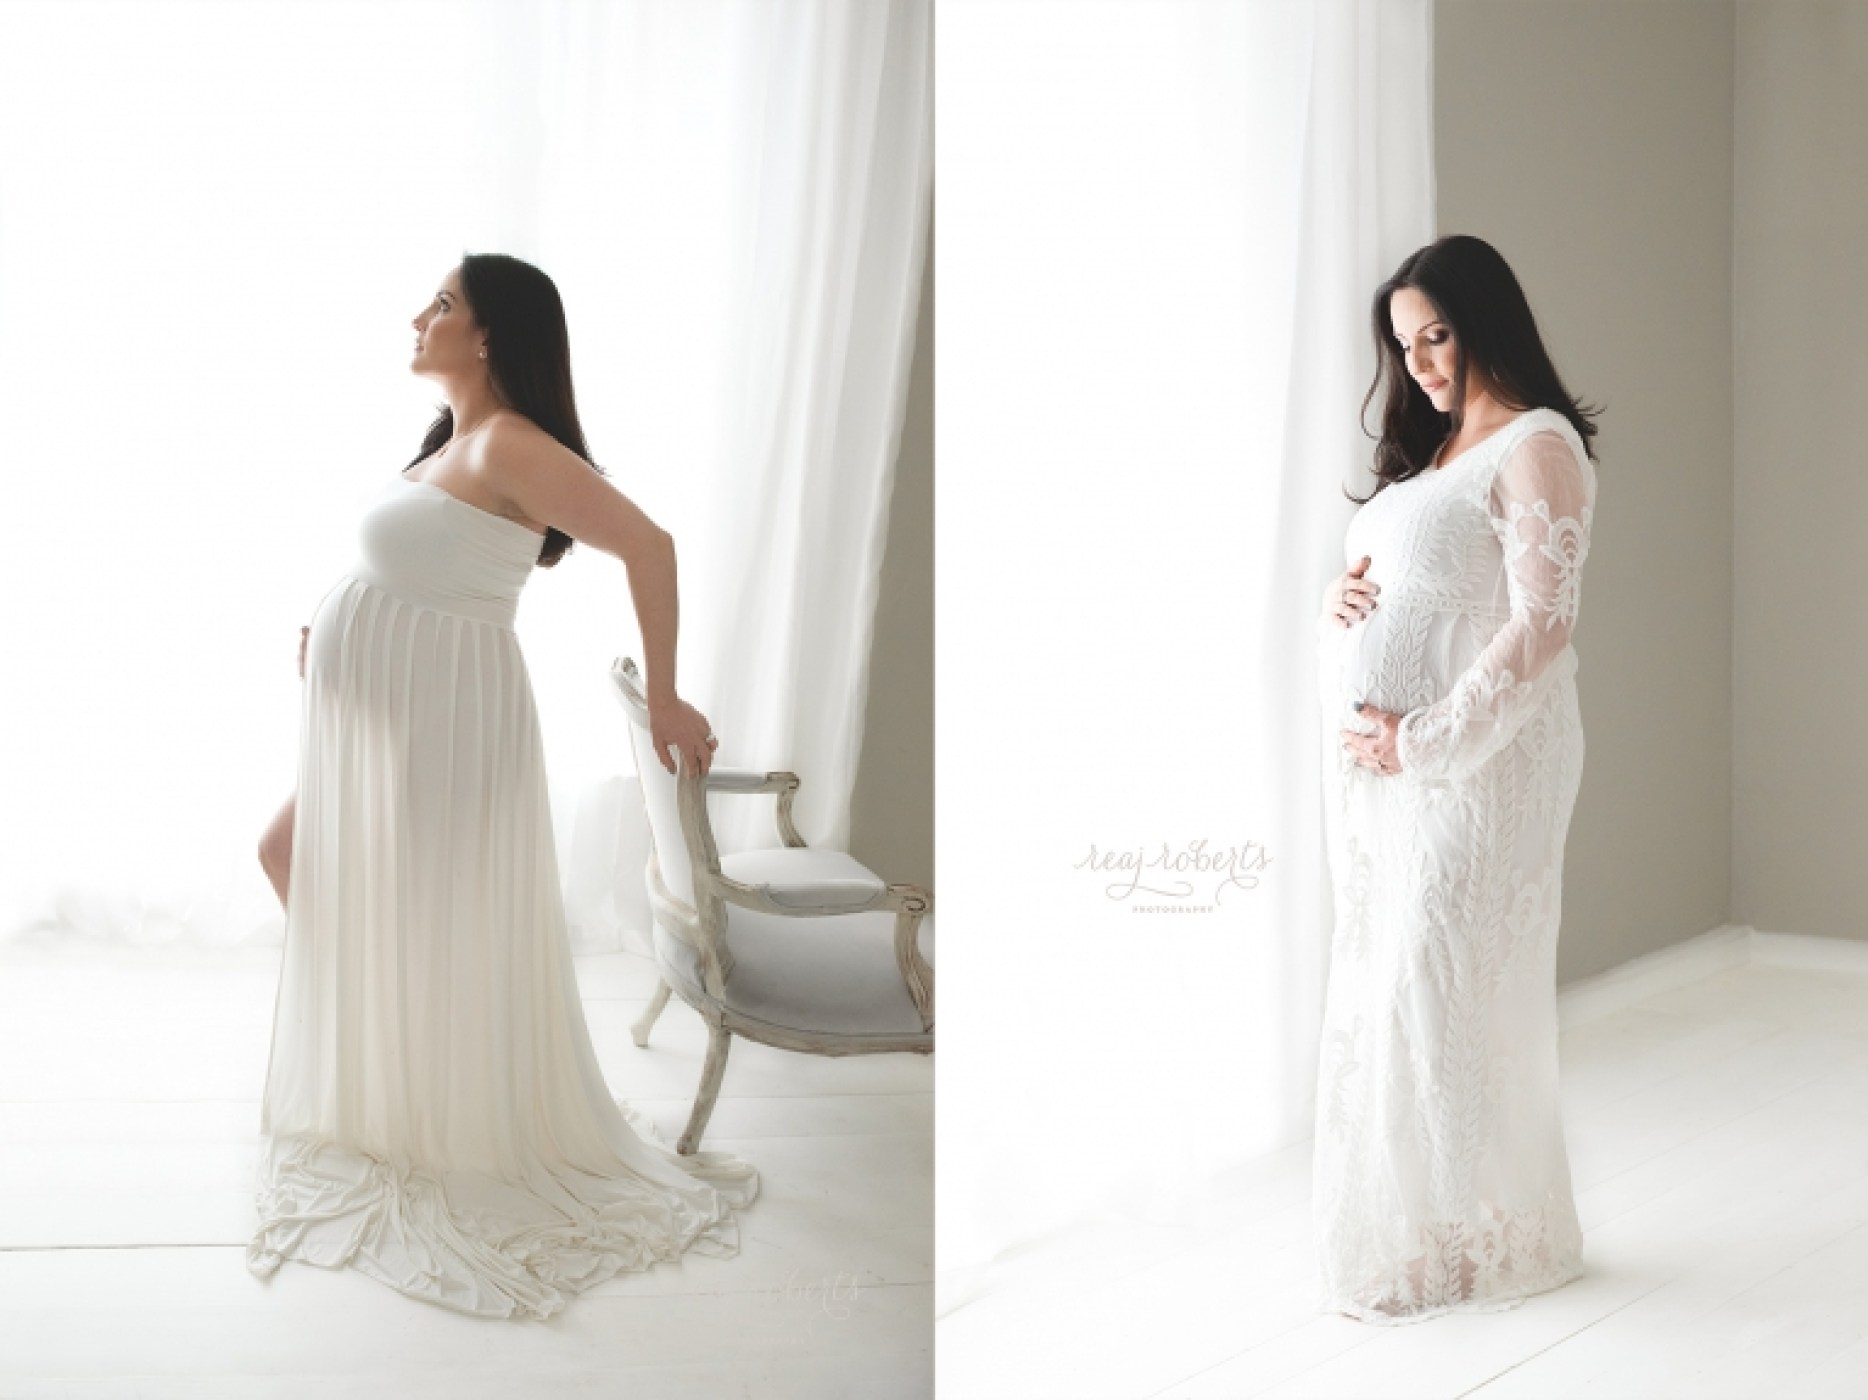 Professional Maternity Photography Studio Chandler, AZ | Reaj Roberts Photography